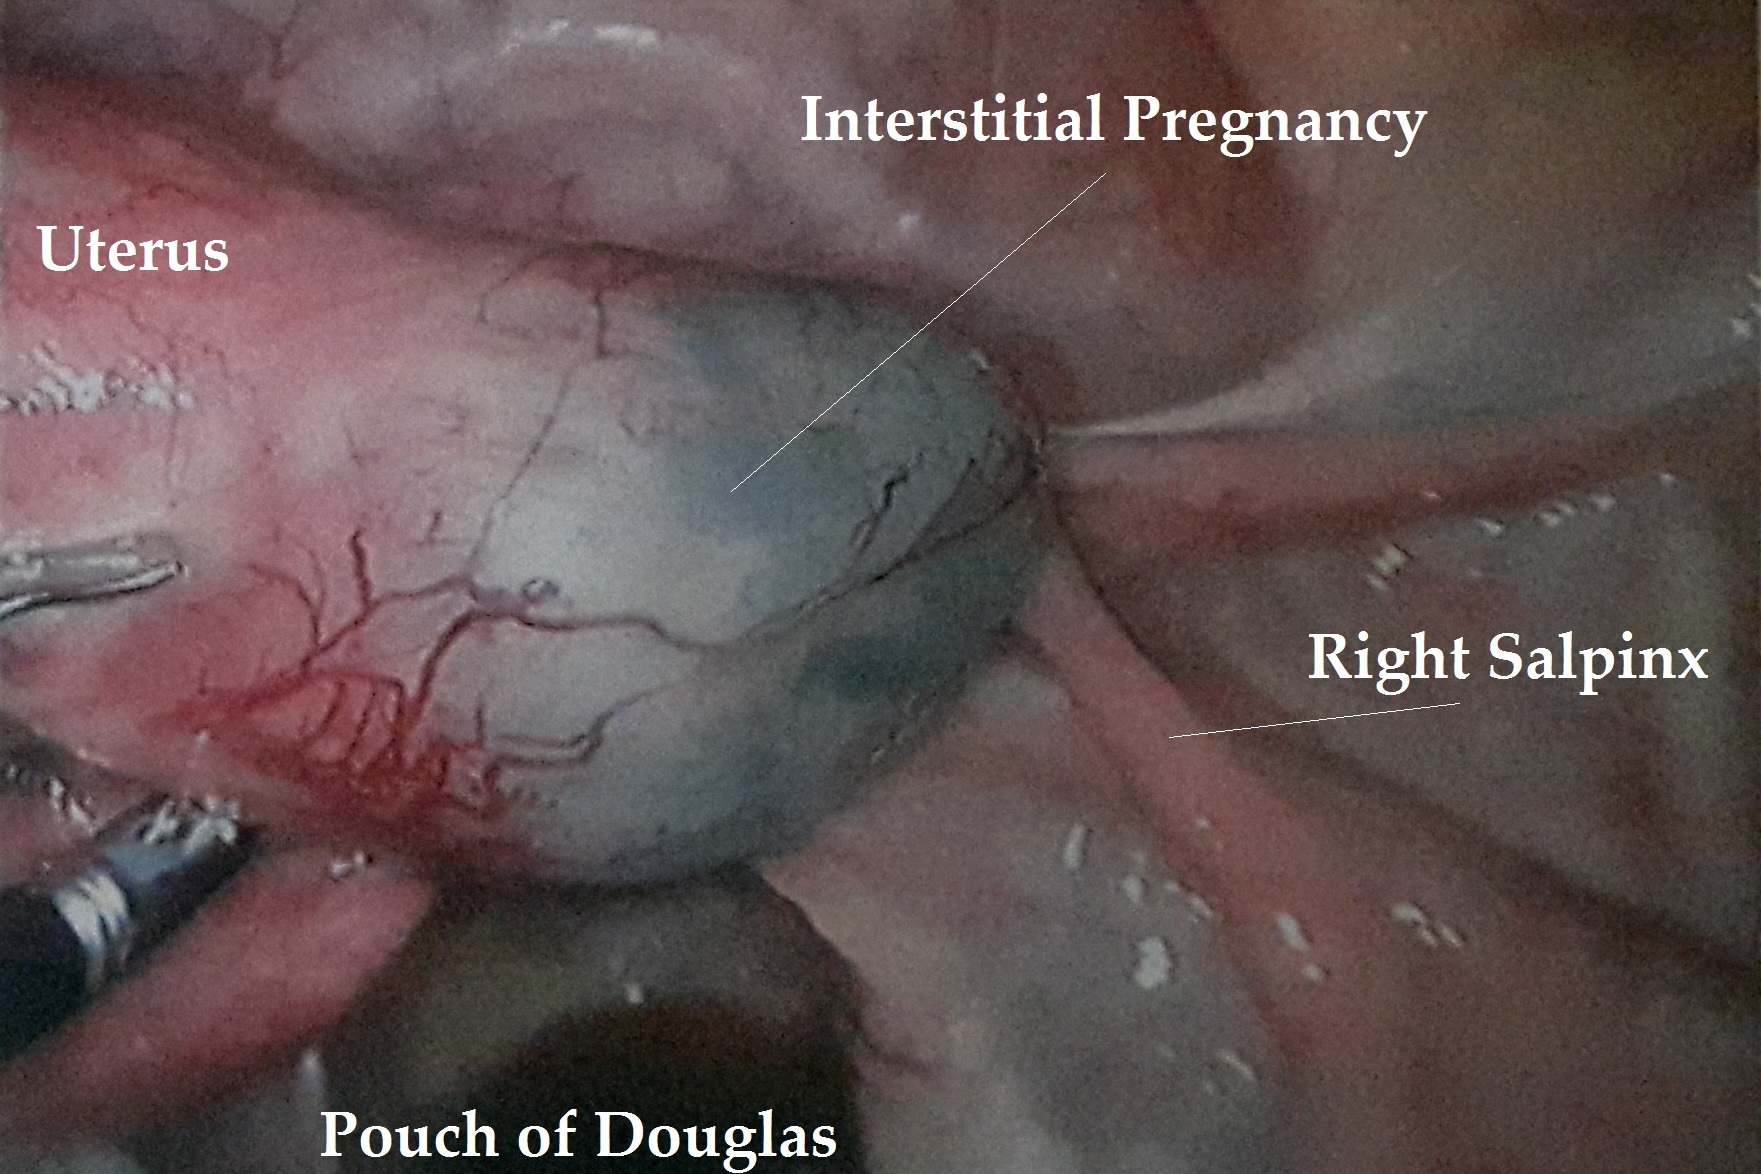 Interstitial Pregnancy Operation